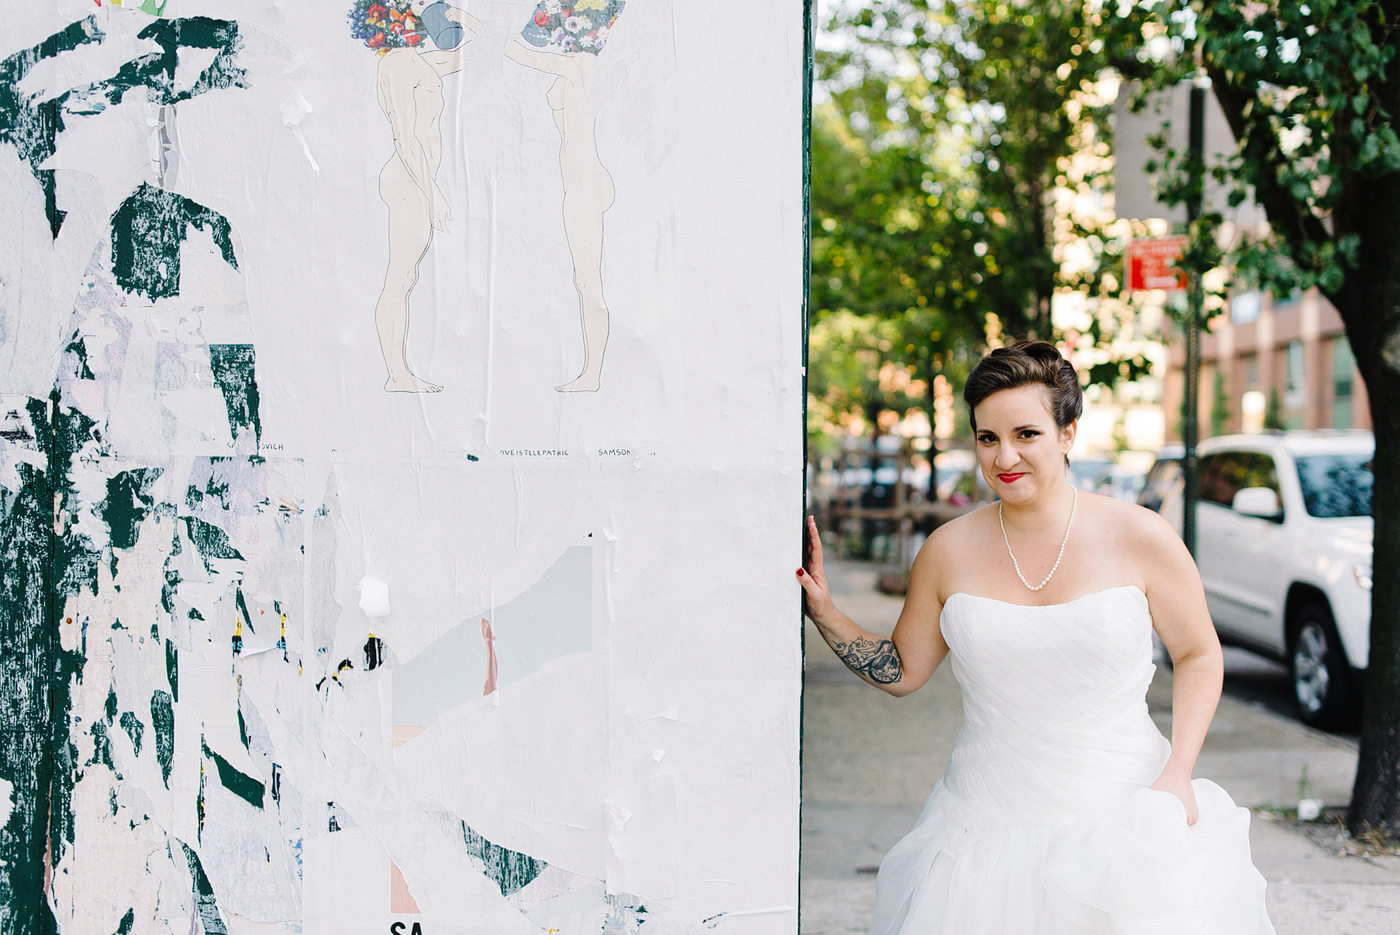 offbeat bride with red lipstick